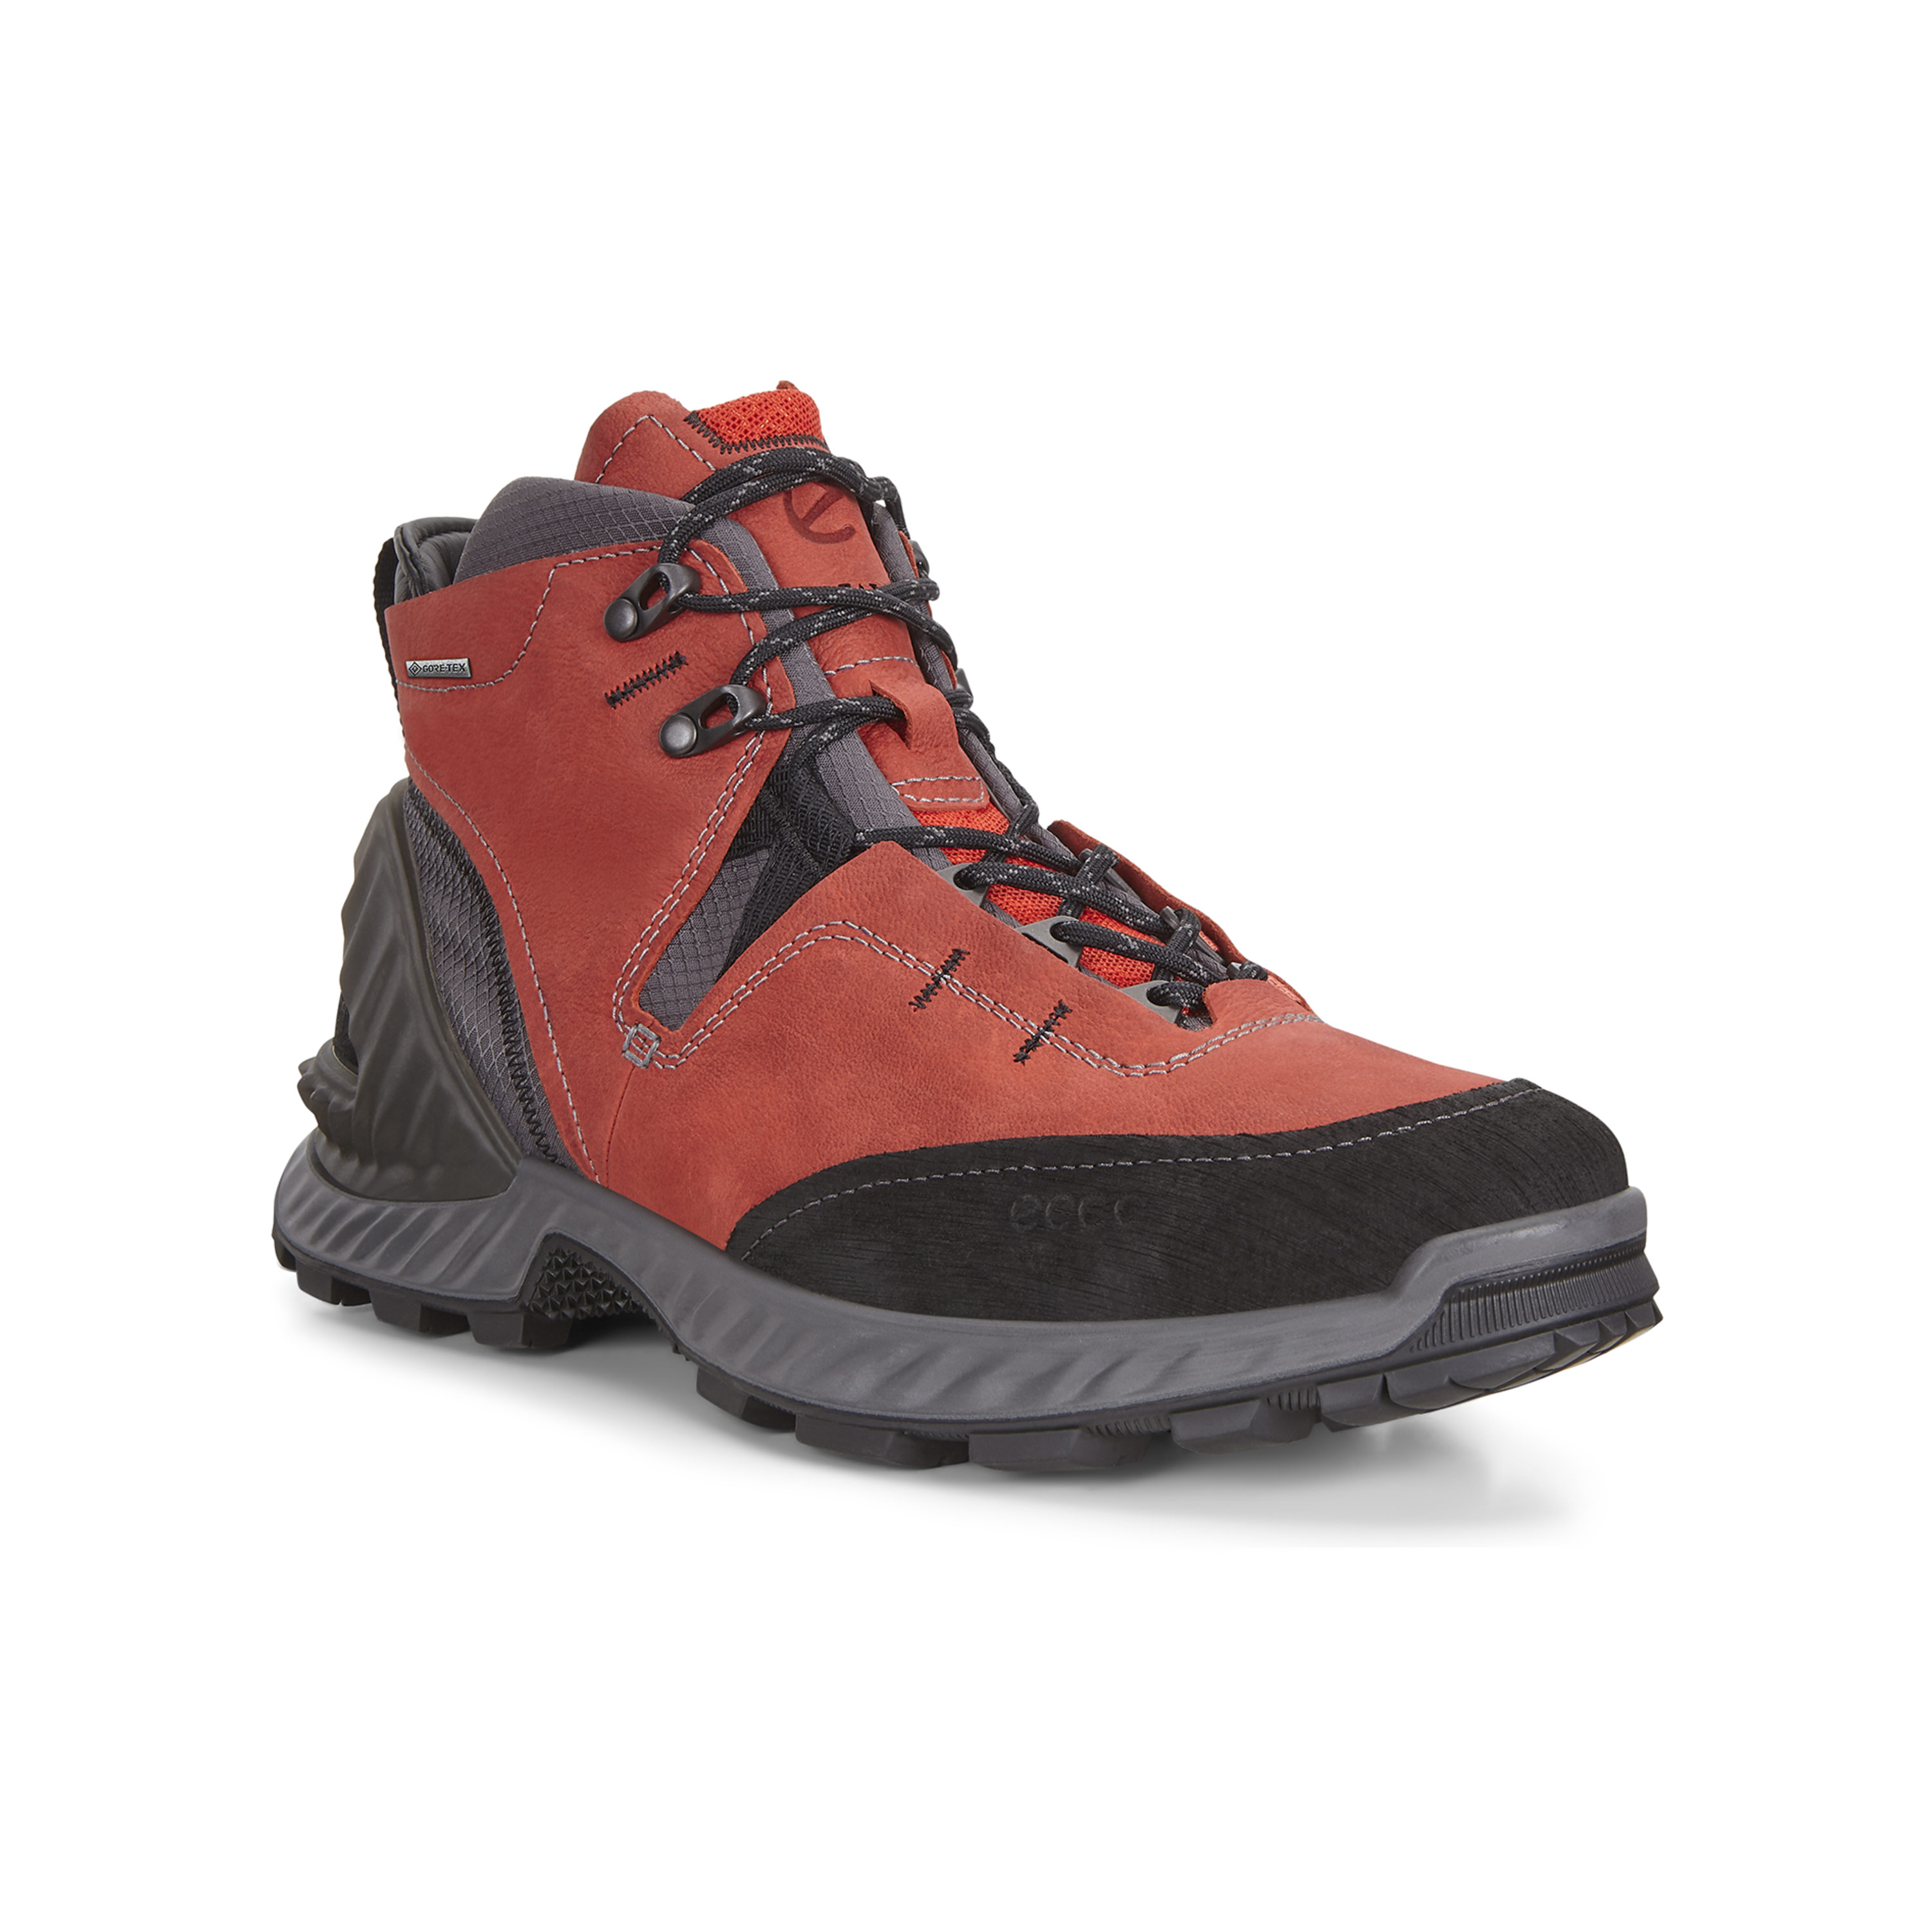 Men's Ecco Exohike GTX Rugged trekking boots with Gore Tex